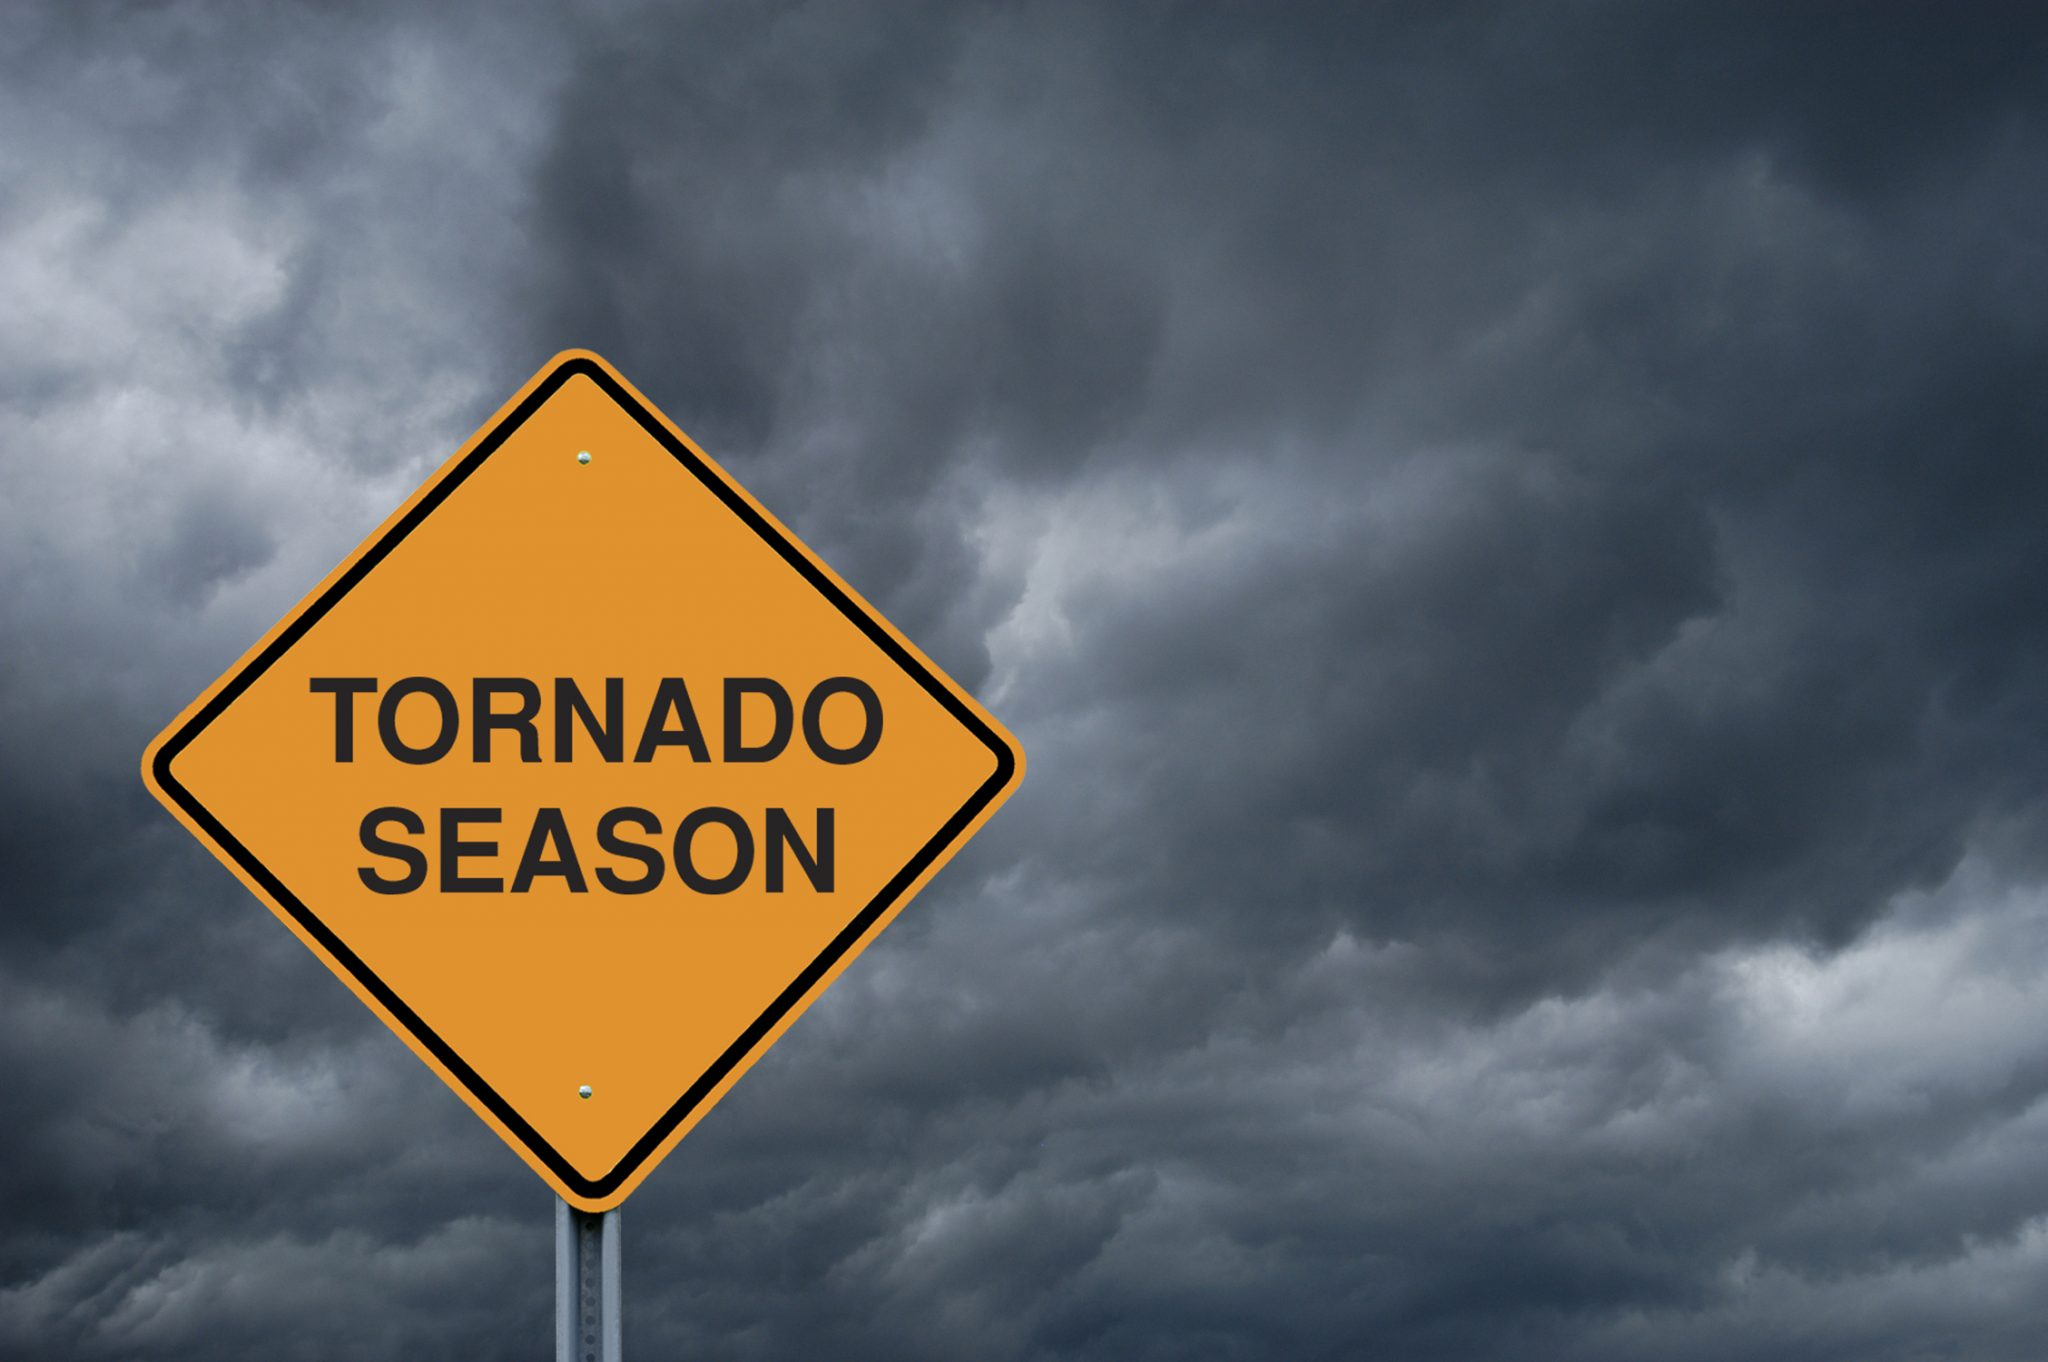 eight dos and donts of tornado safety